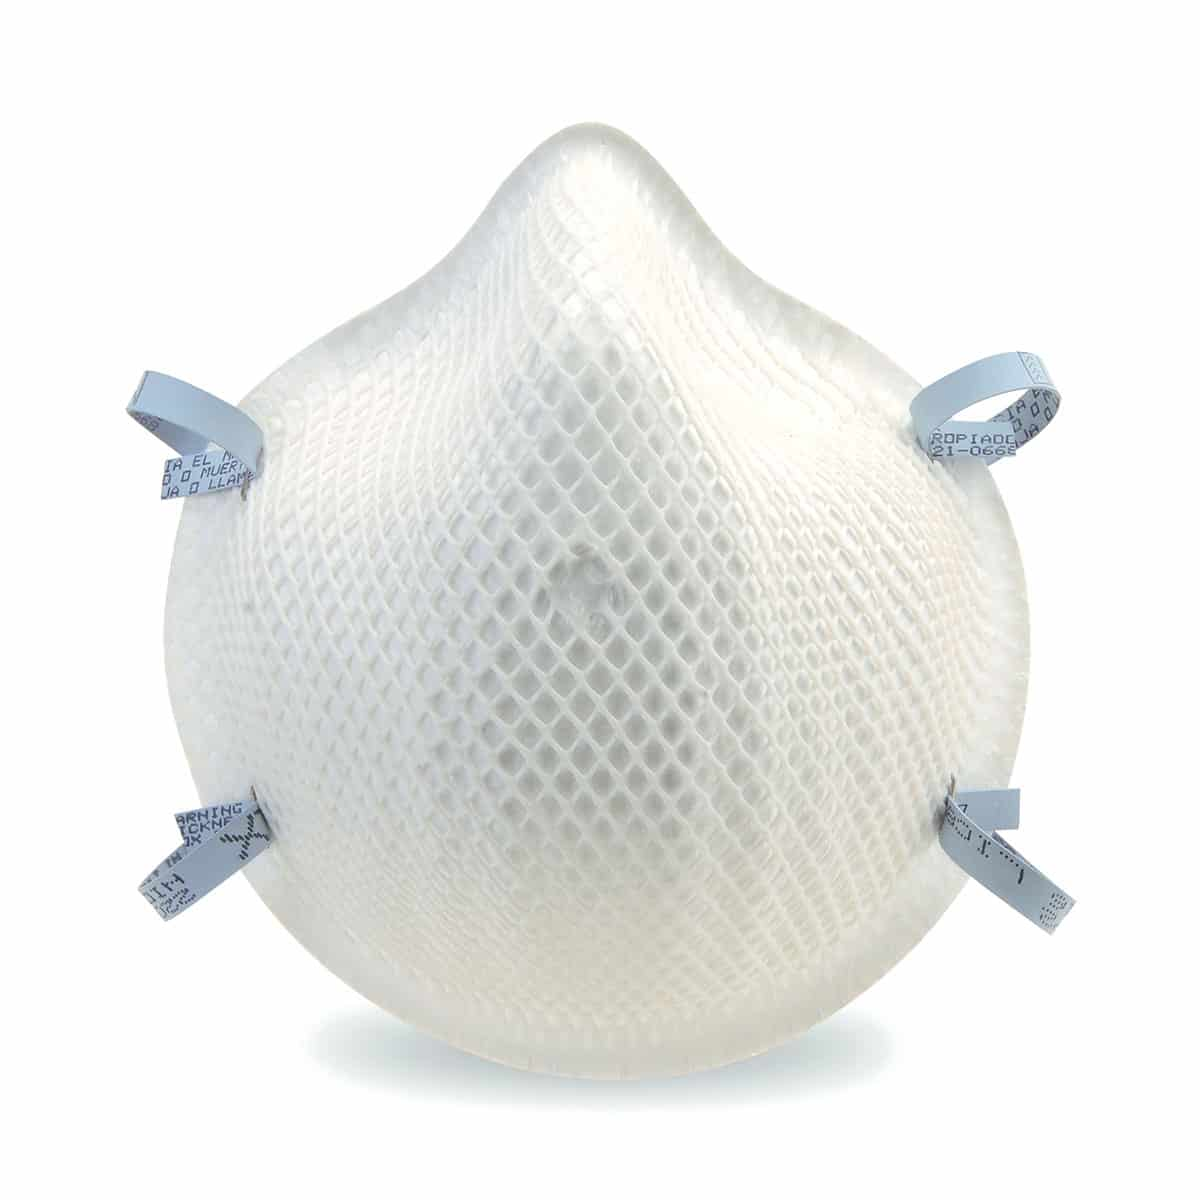 [Mask] Moldex 2200N95 Particulate Respirator (Box of 20) 2